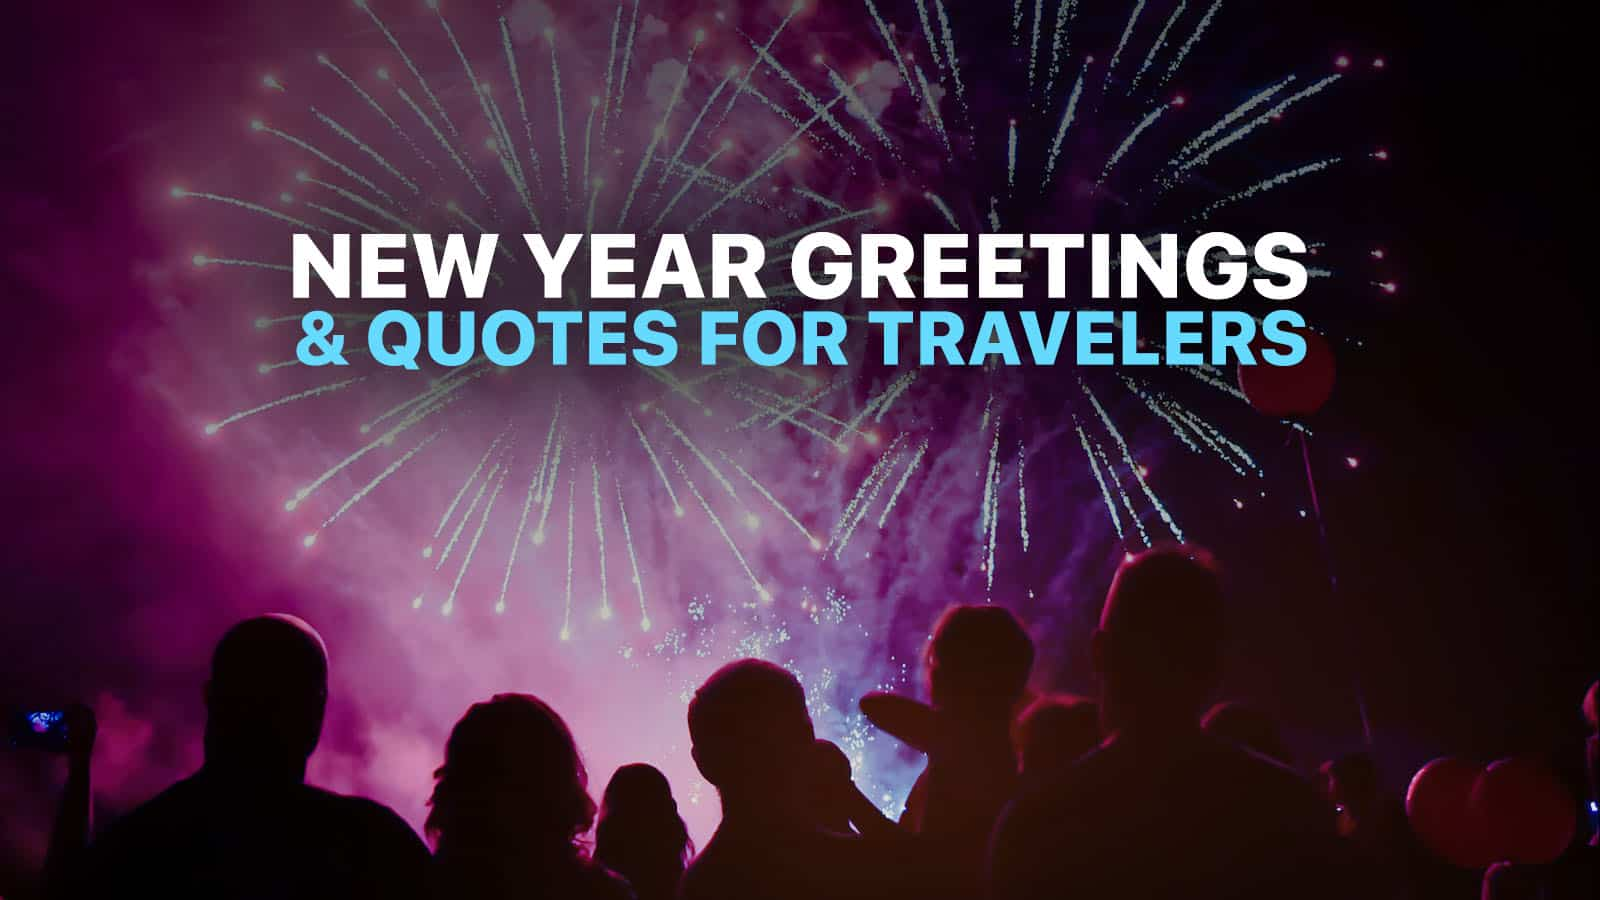 12 new year quotes and greetings for travelers the poor traveler blog m4hsunfo